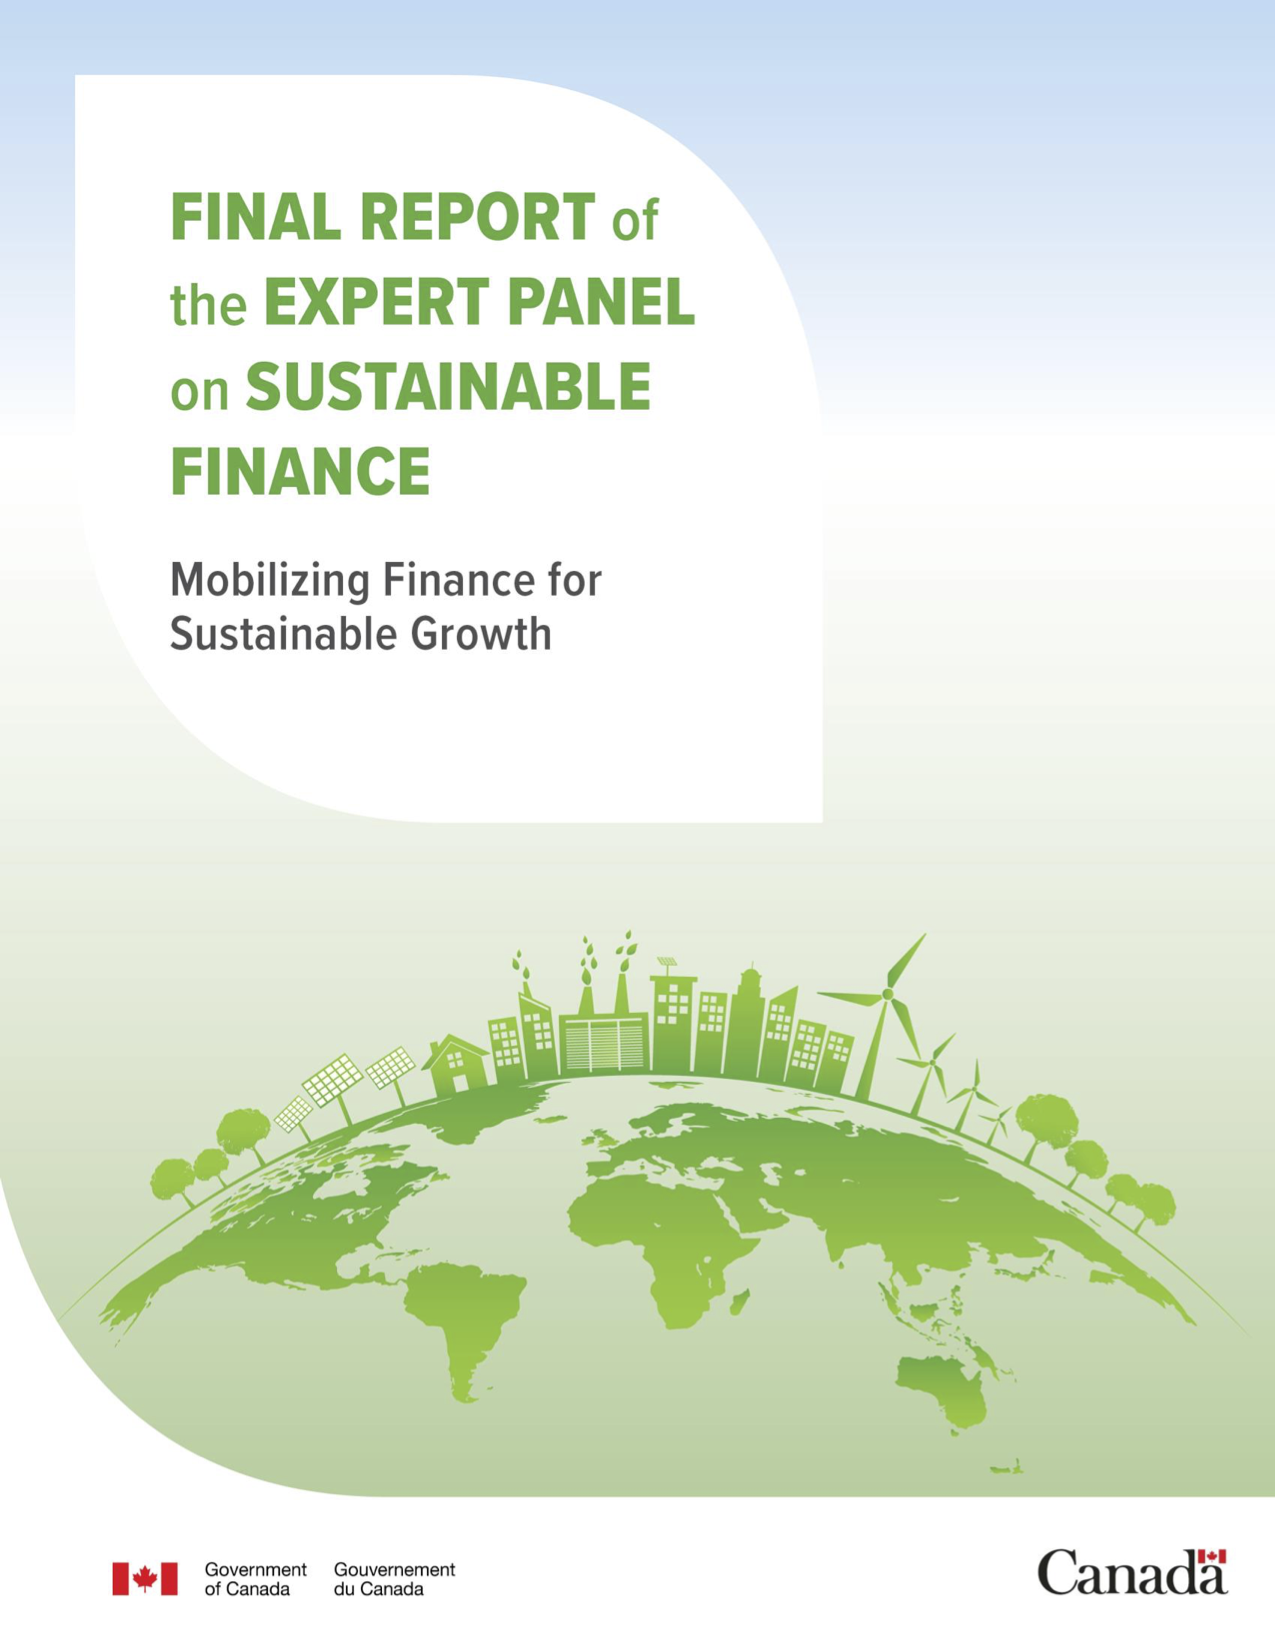 Final Report of the Expert Panel on Sustainable Finance